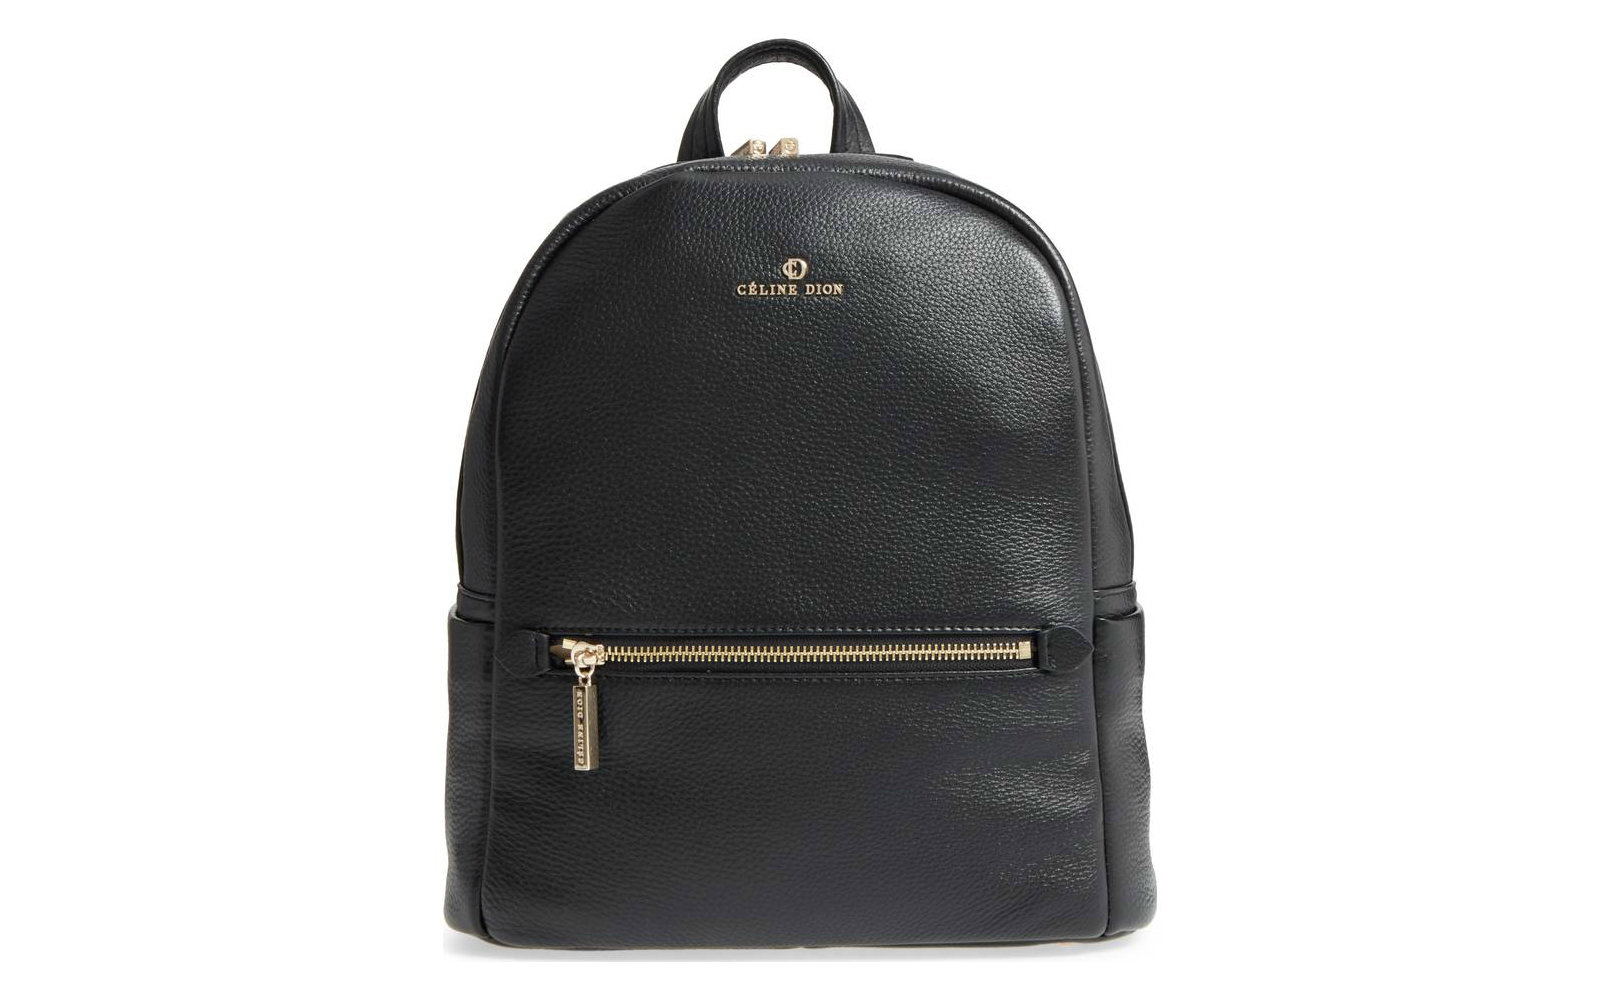 Celine Dion Collection Backpack